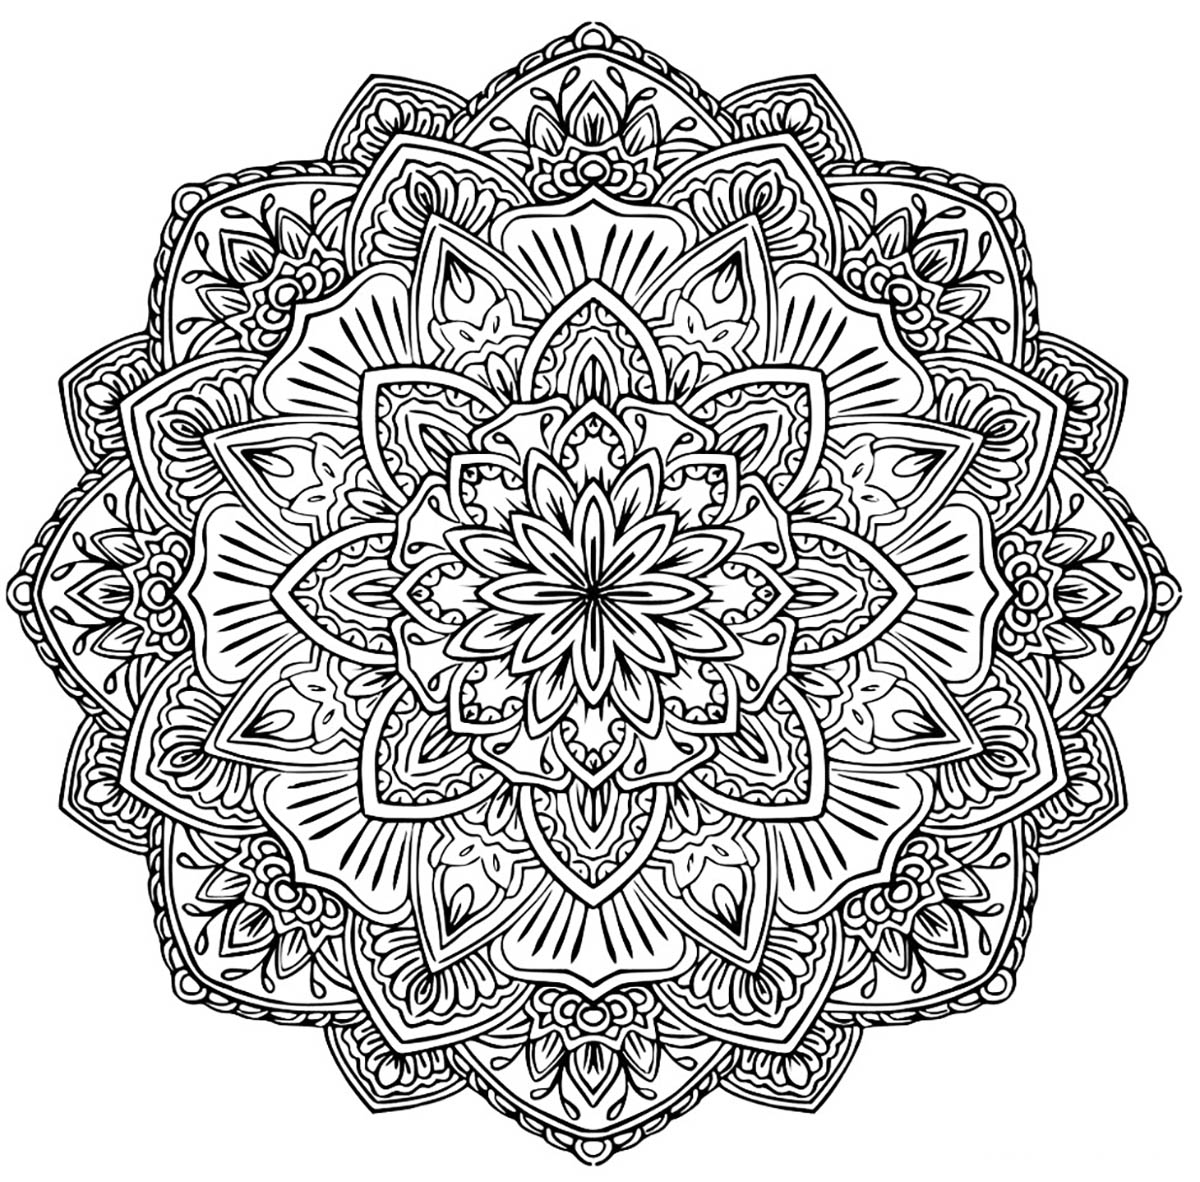 Mandala To Download Strange And Beautiful Flower Mandalas With